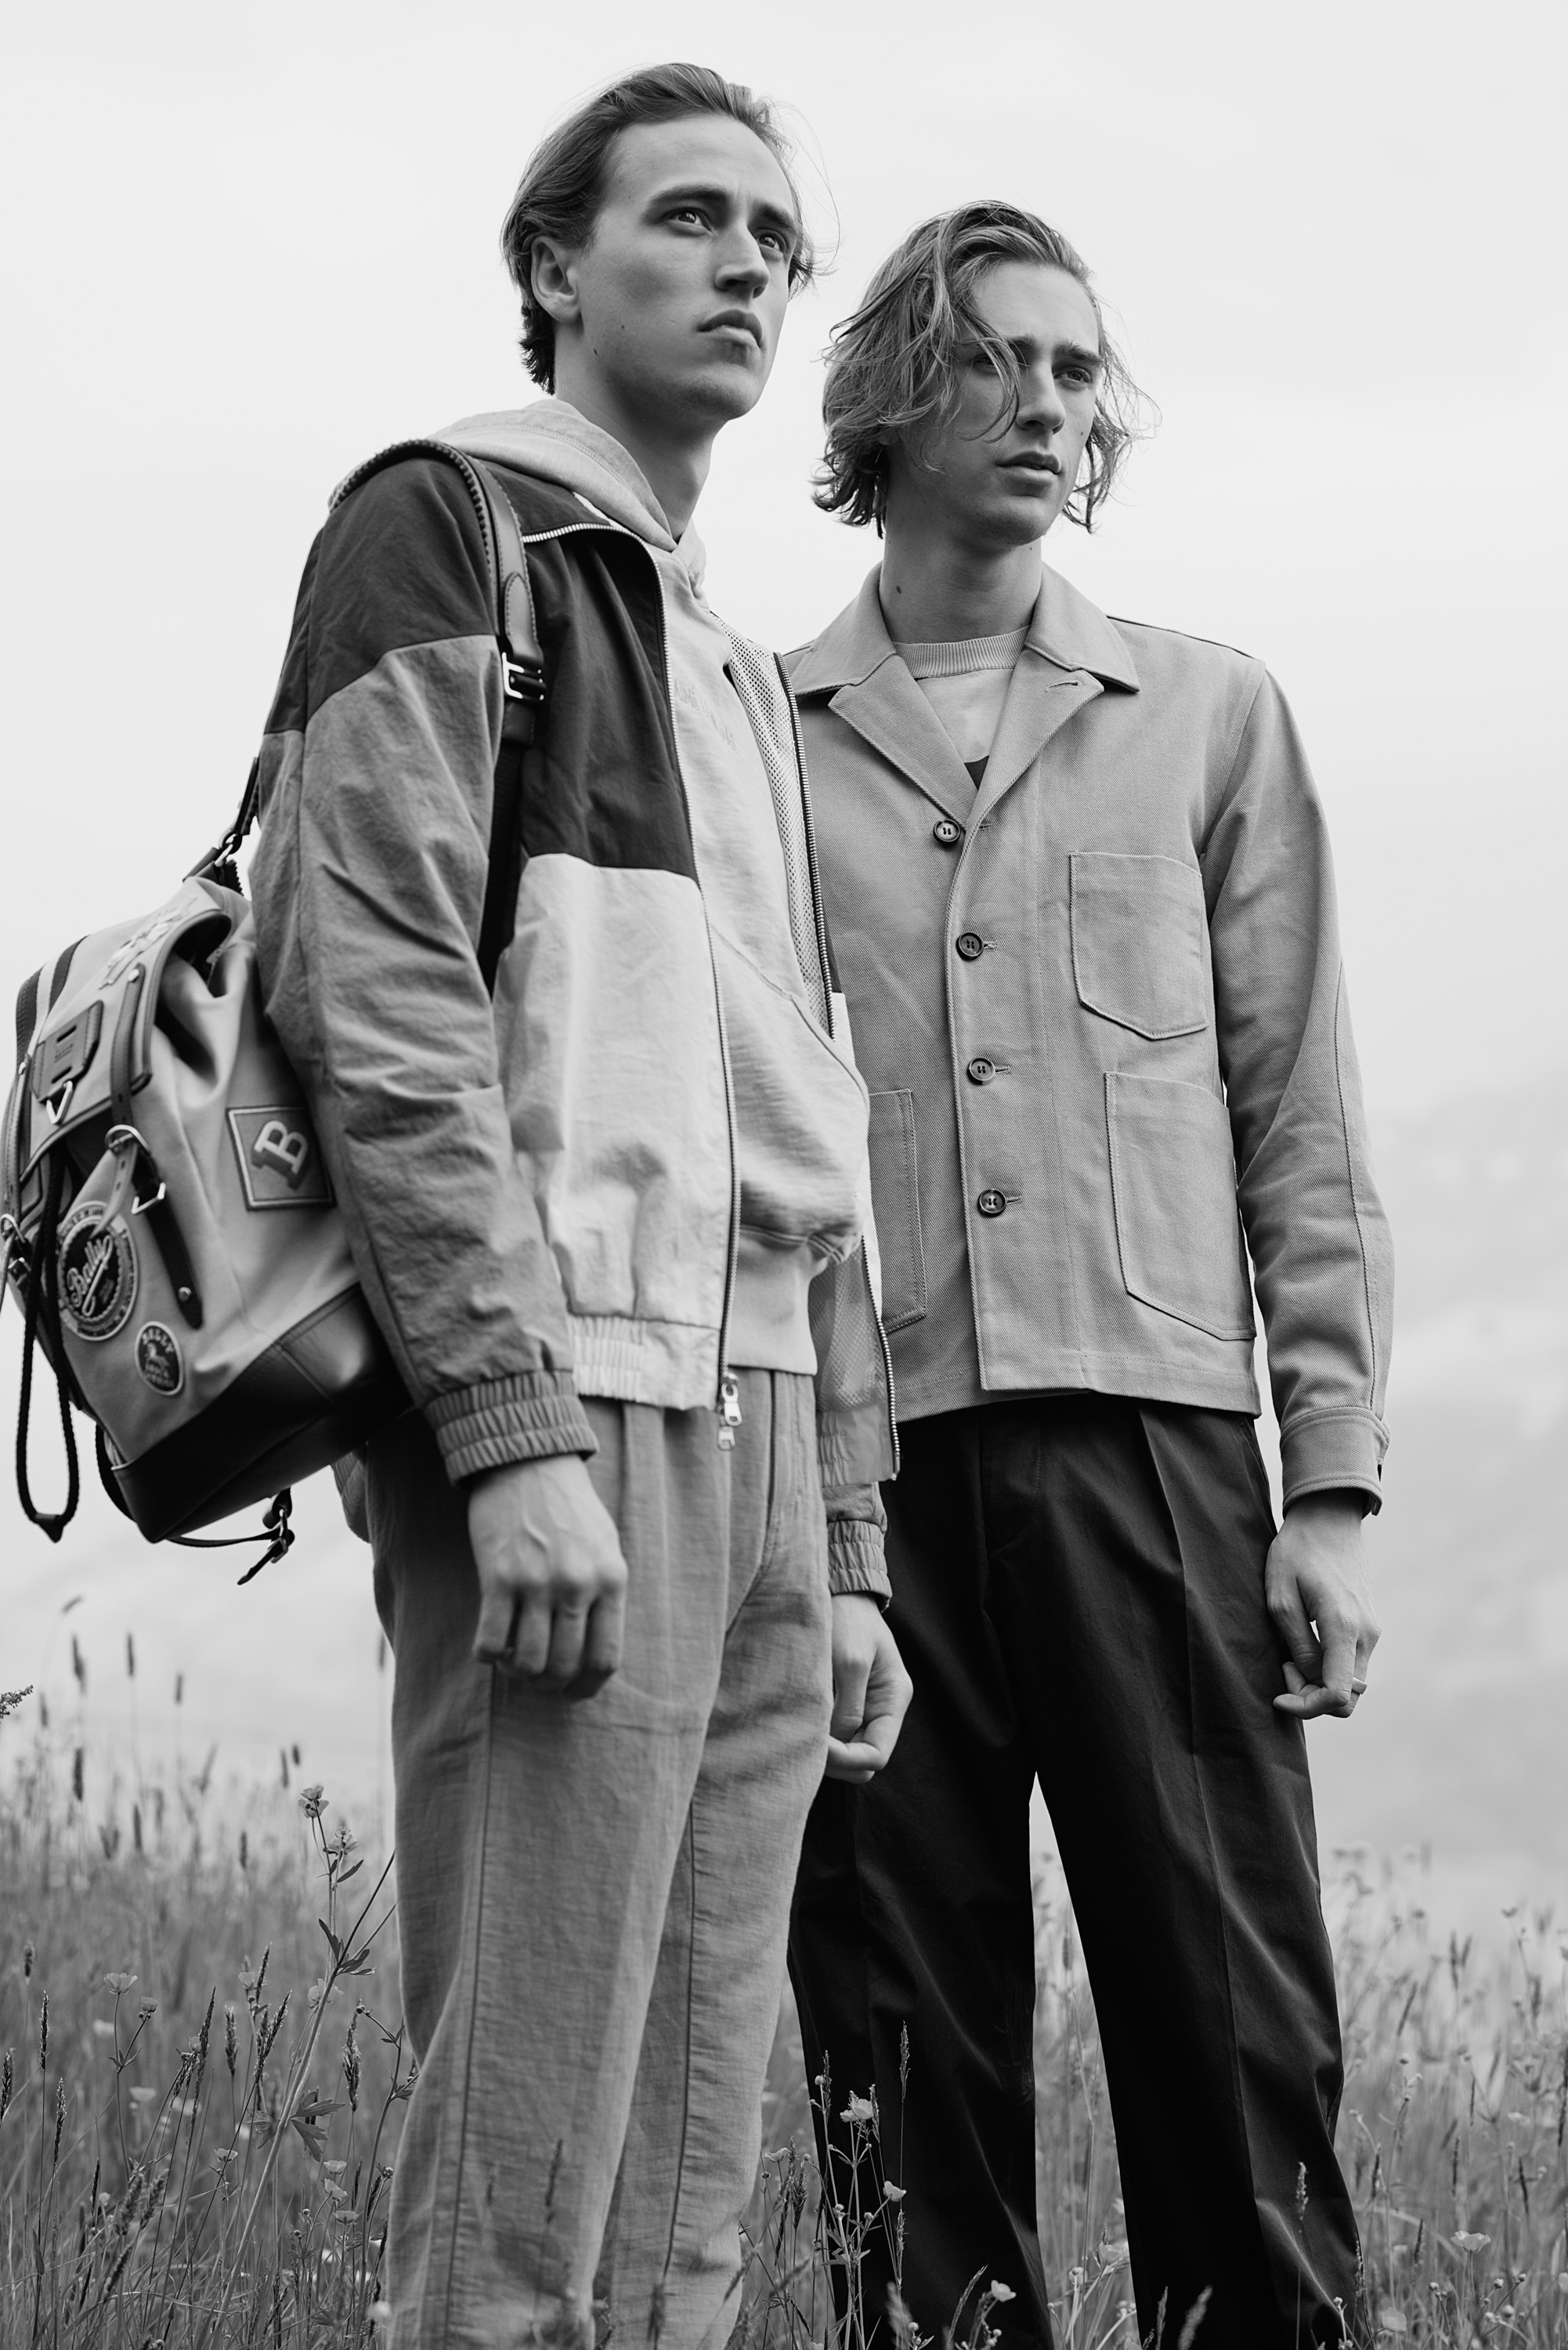 Moritz wears jacket and sweater by  Aimé Leon Dore , trousers by  Études  and backpack by  Bally . Oliver wears jacket by  Acne Studios , sweater and trousers by  Marni .